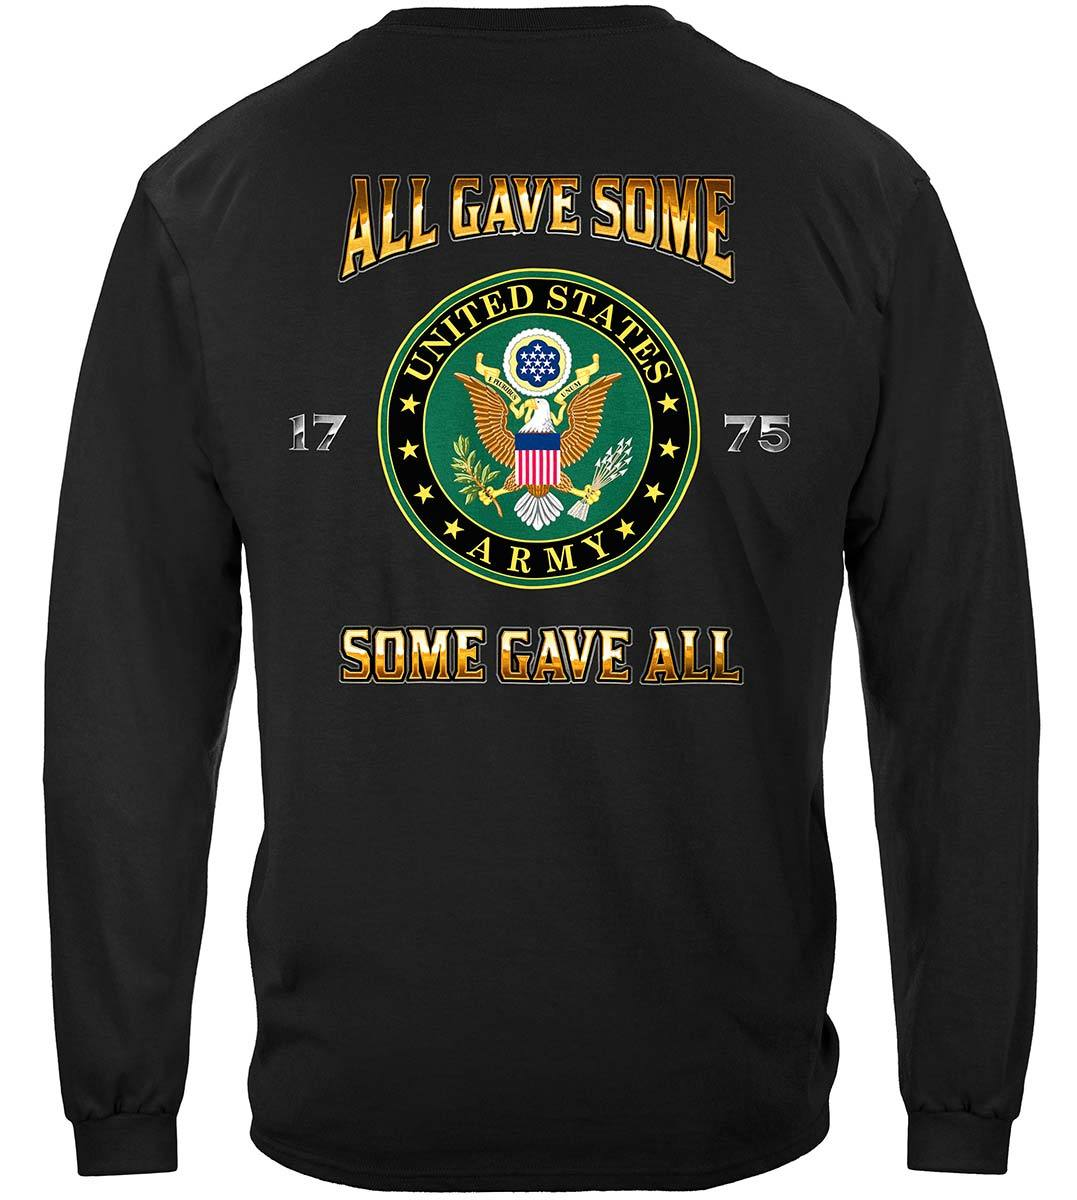 US Army All Gave Some Premium Long Sleeves